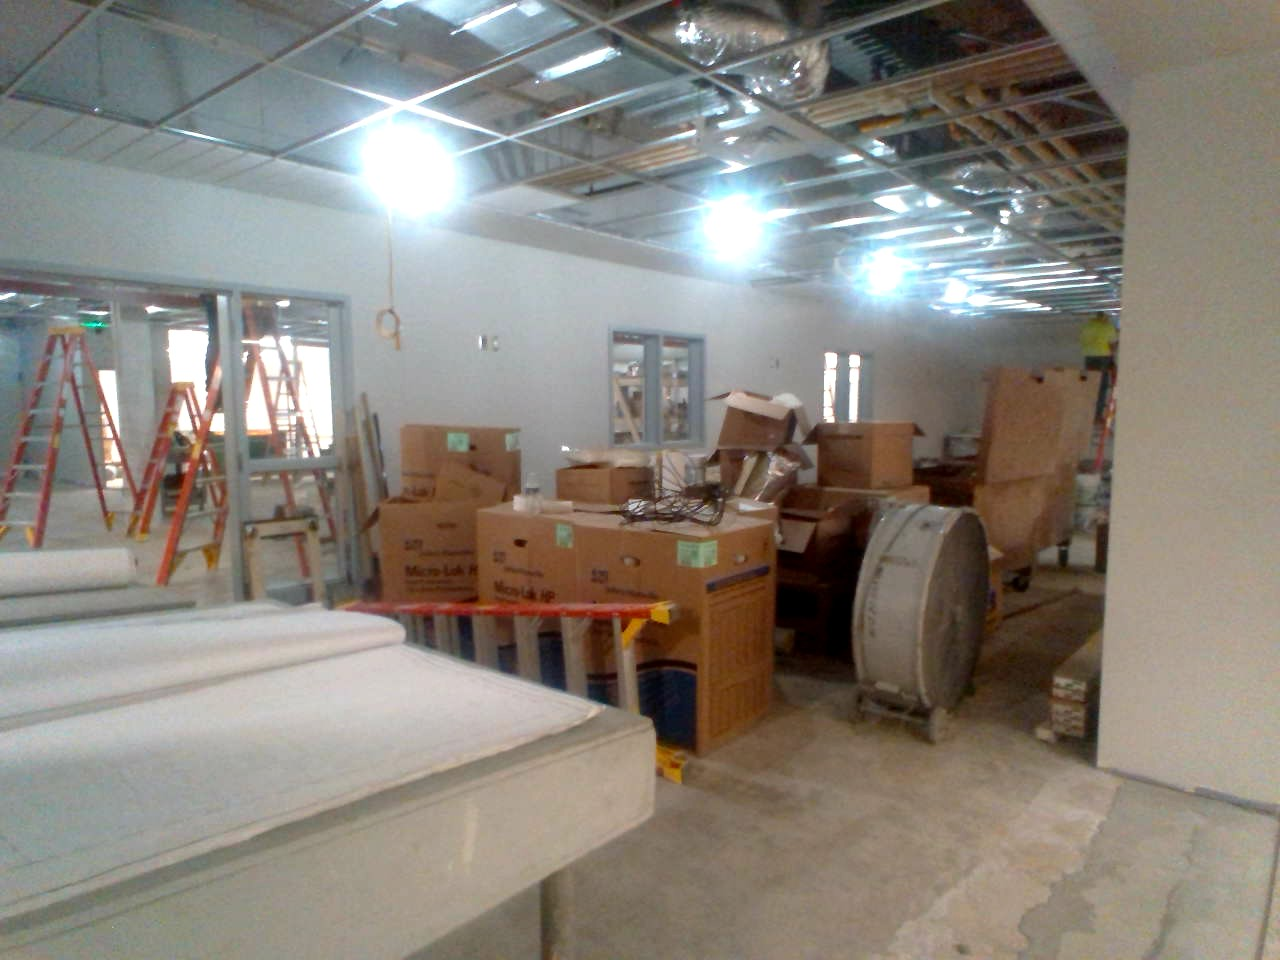 Constructions crews continue their work in the A building pushing toward and October completion date for the library.